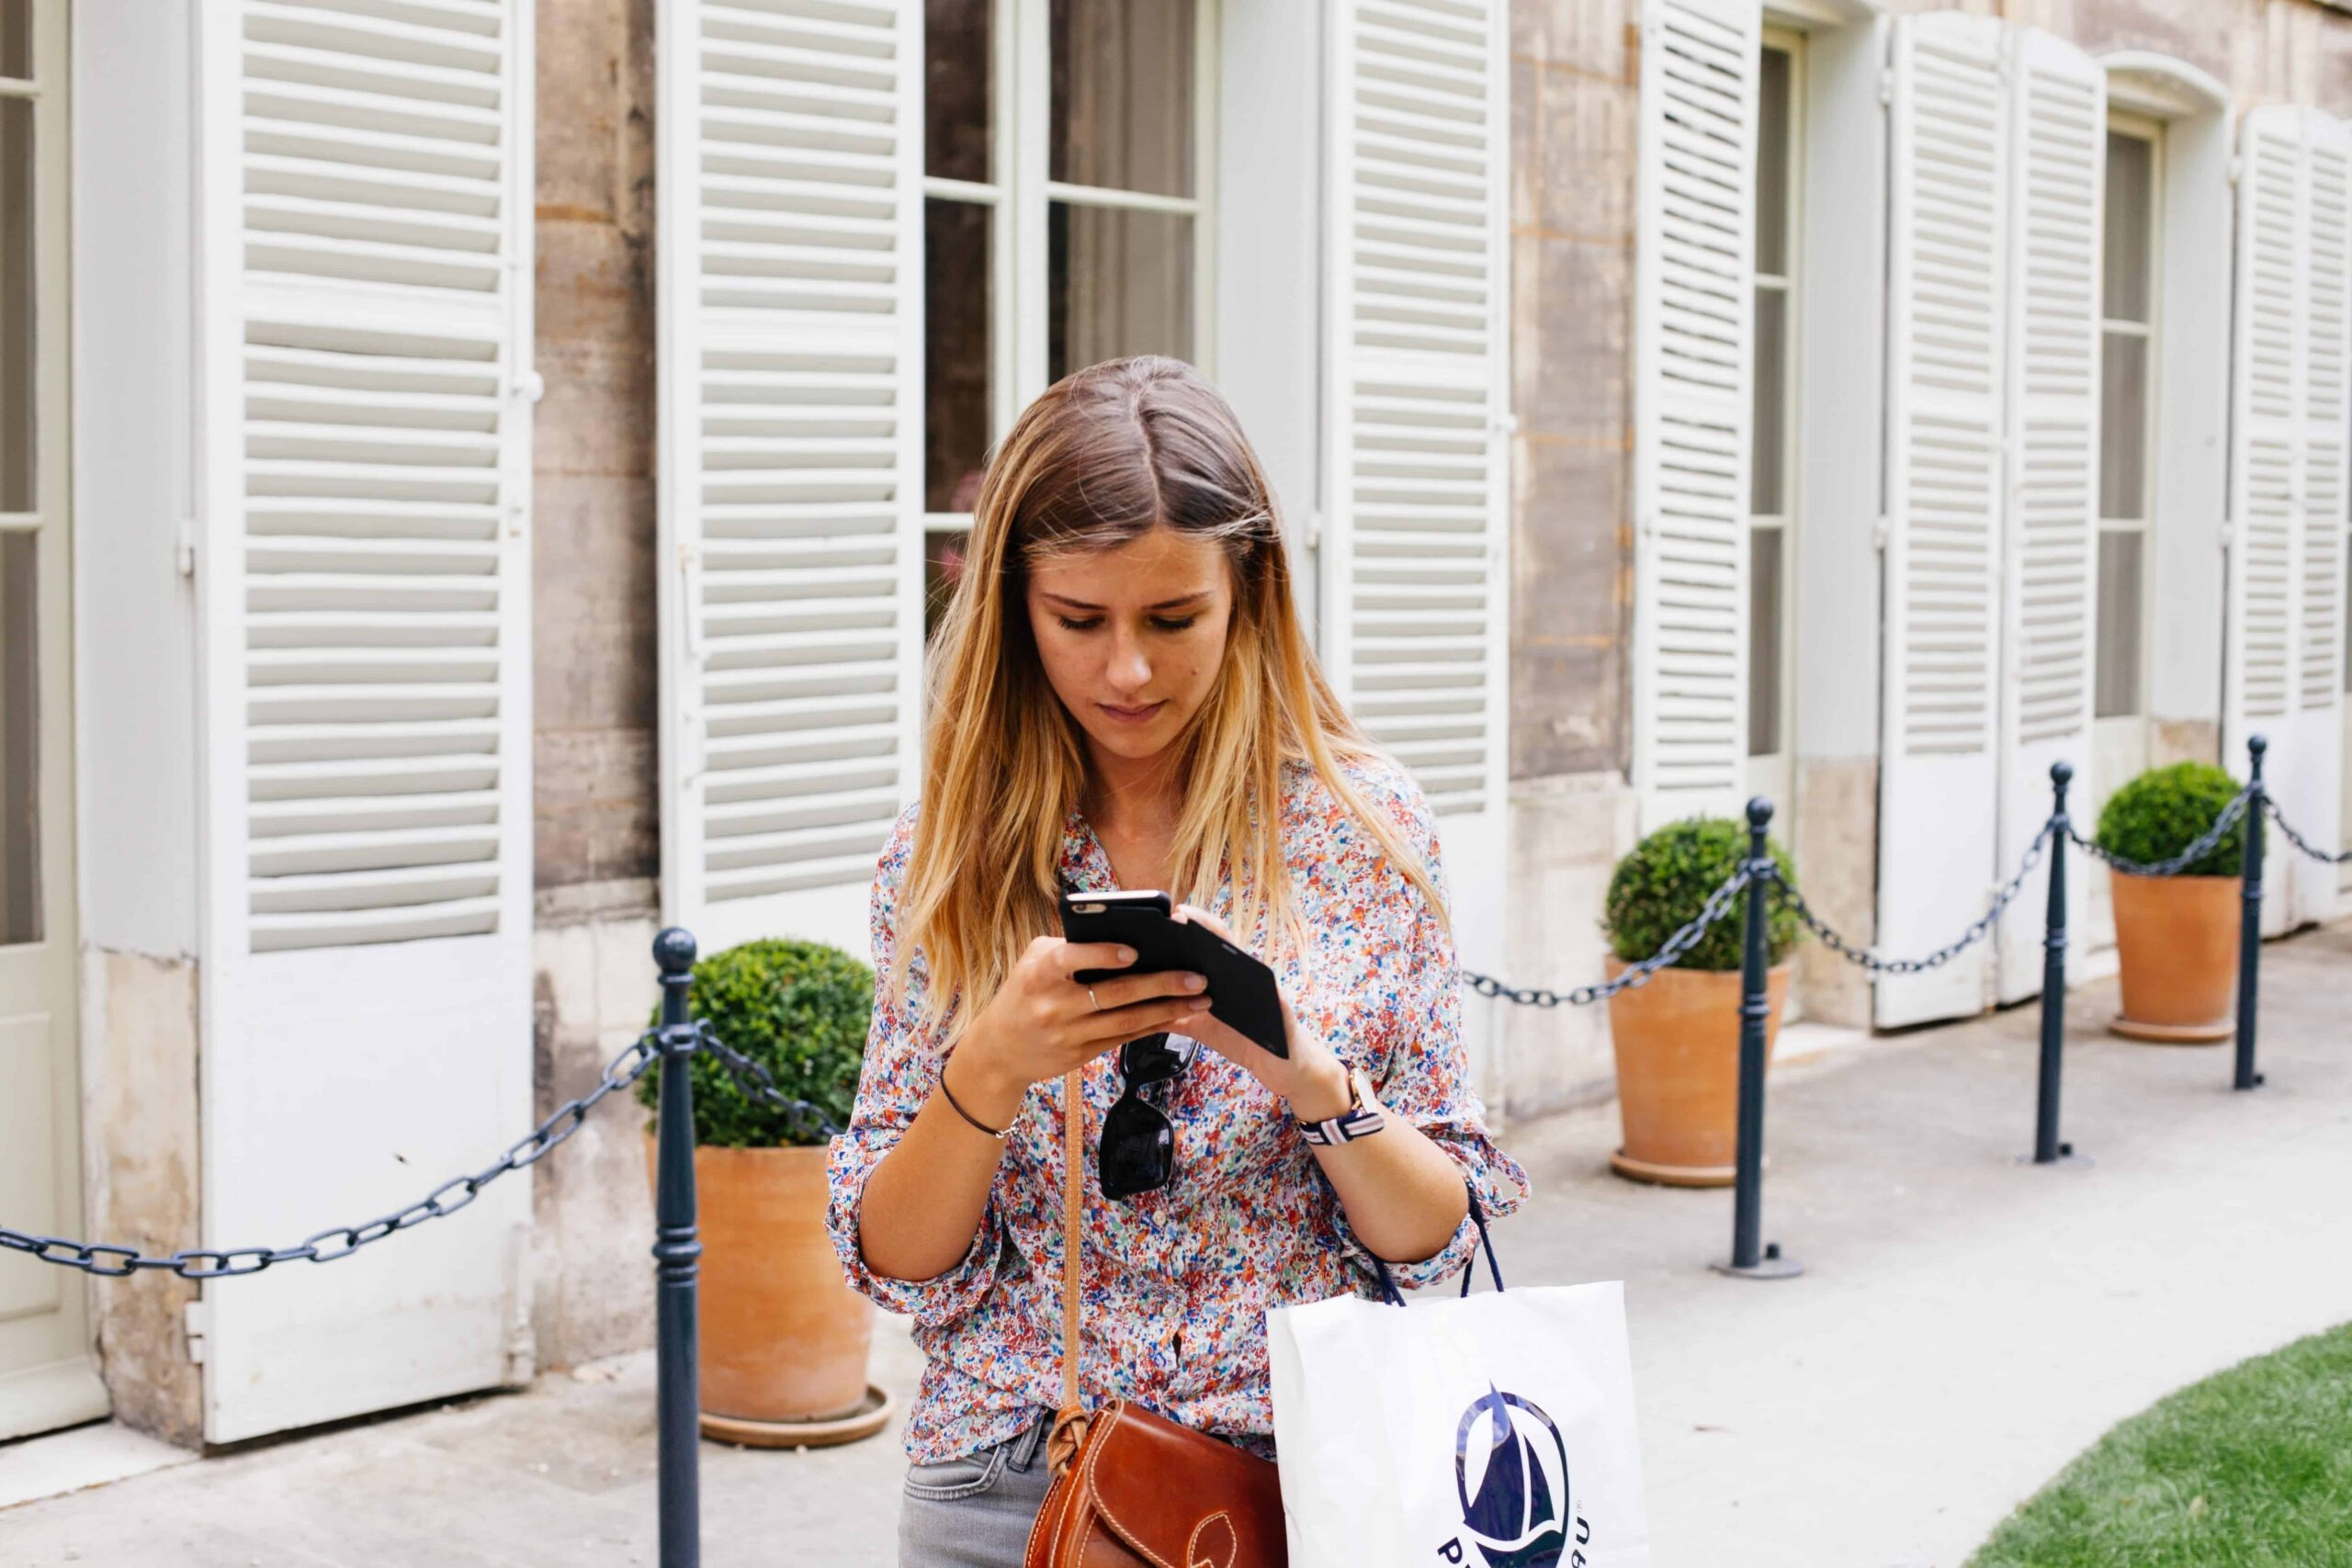 woman-shopping-on-smartphone